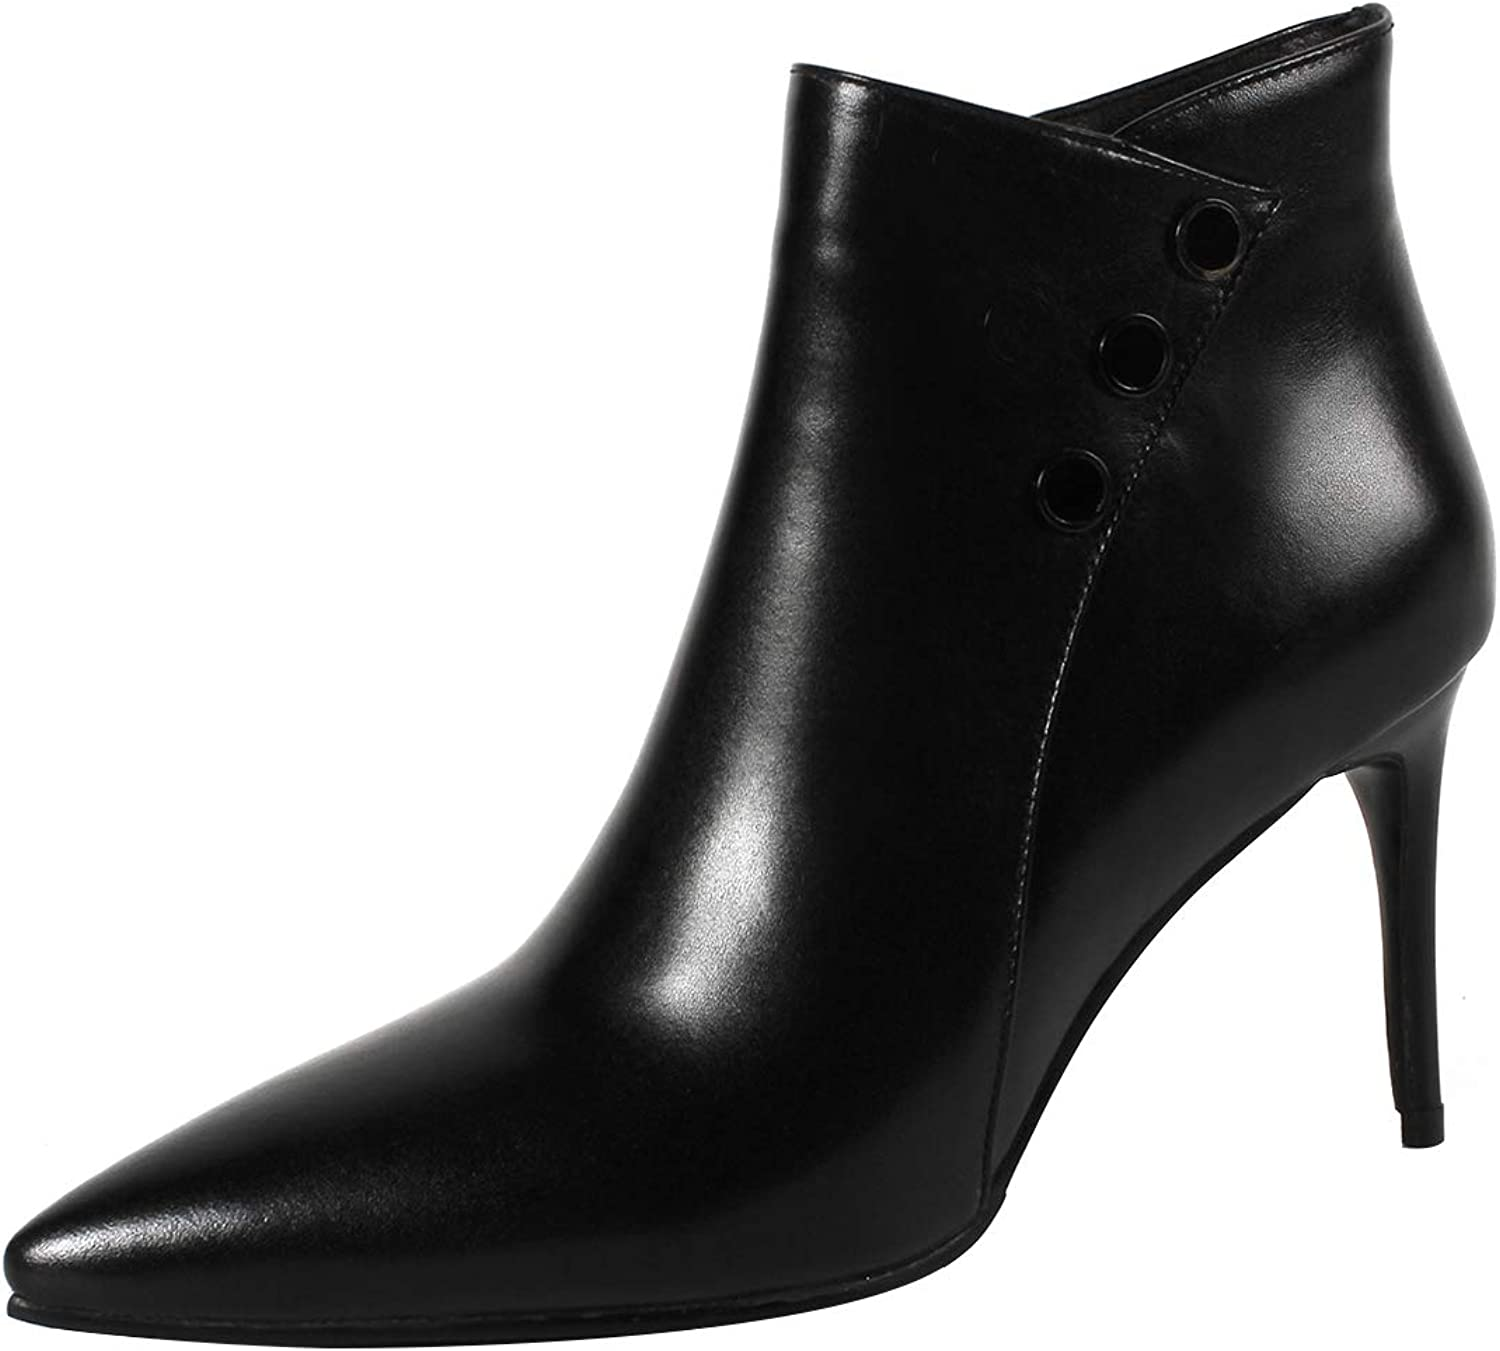 Eithy Women's Shact Stiletto Ankle-high Zipper Leather Boots